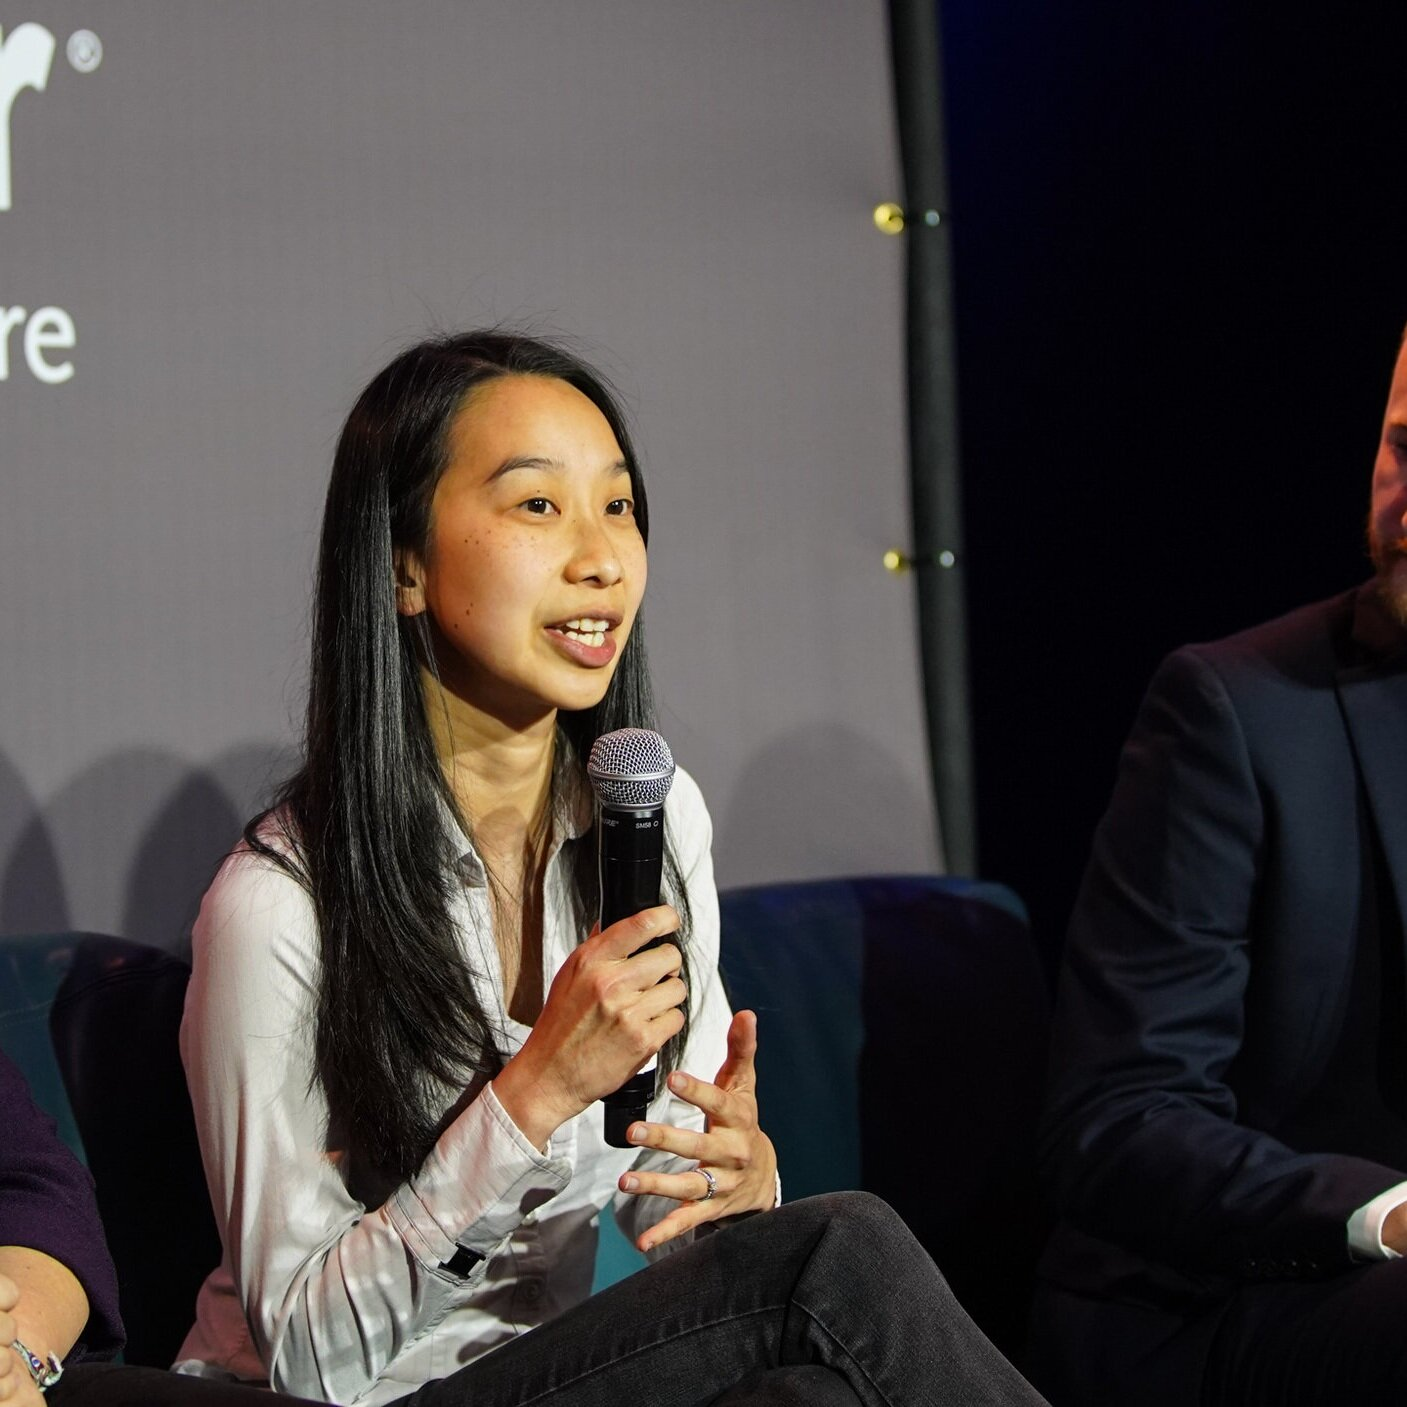 """The Idea Village team are so incredibly helpful to both entrepreneurs as well as to the New Orleans entrepreneurship community. - They're tireless and absolutely selfless in their assistance, whether in helping us improve our companies' operations and strategy or in introductions to other entrepreneurs, mentors, or investors. We loved working with them!""- Dianna Liu, Founder ARIX Technologies"